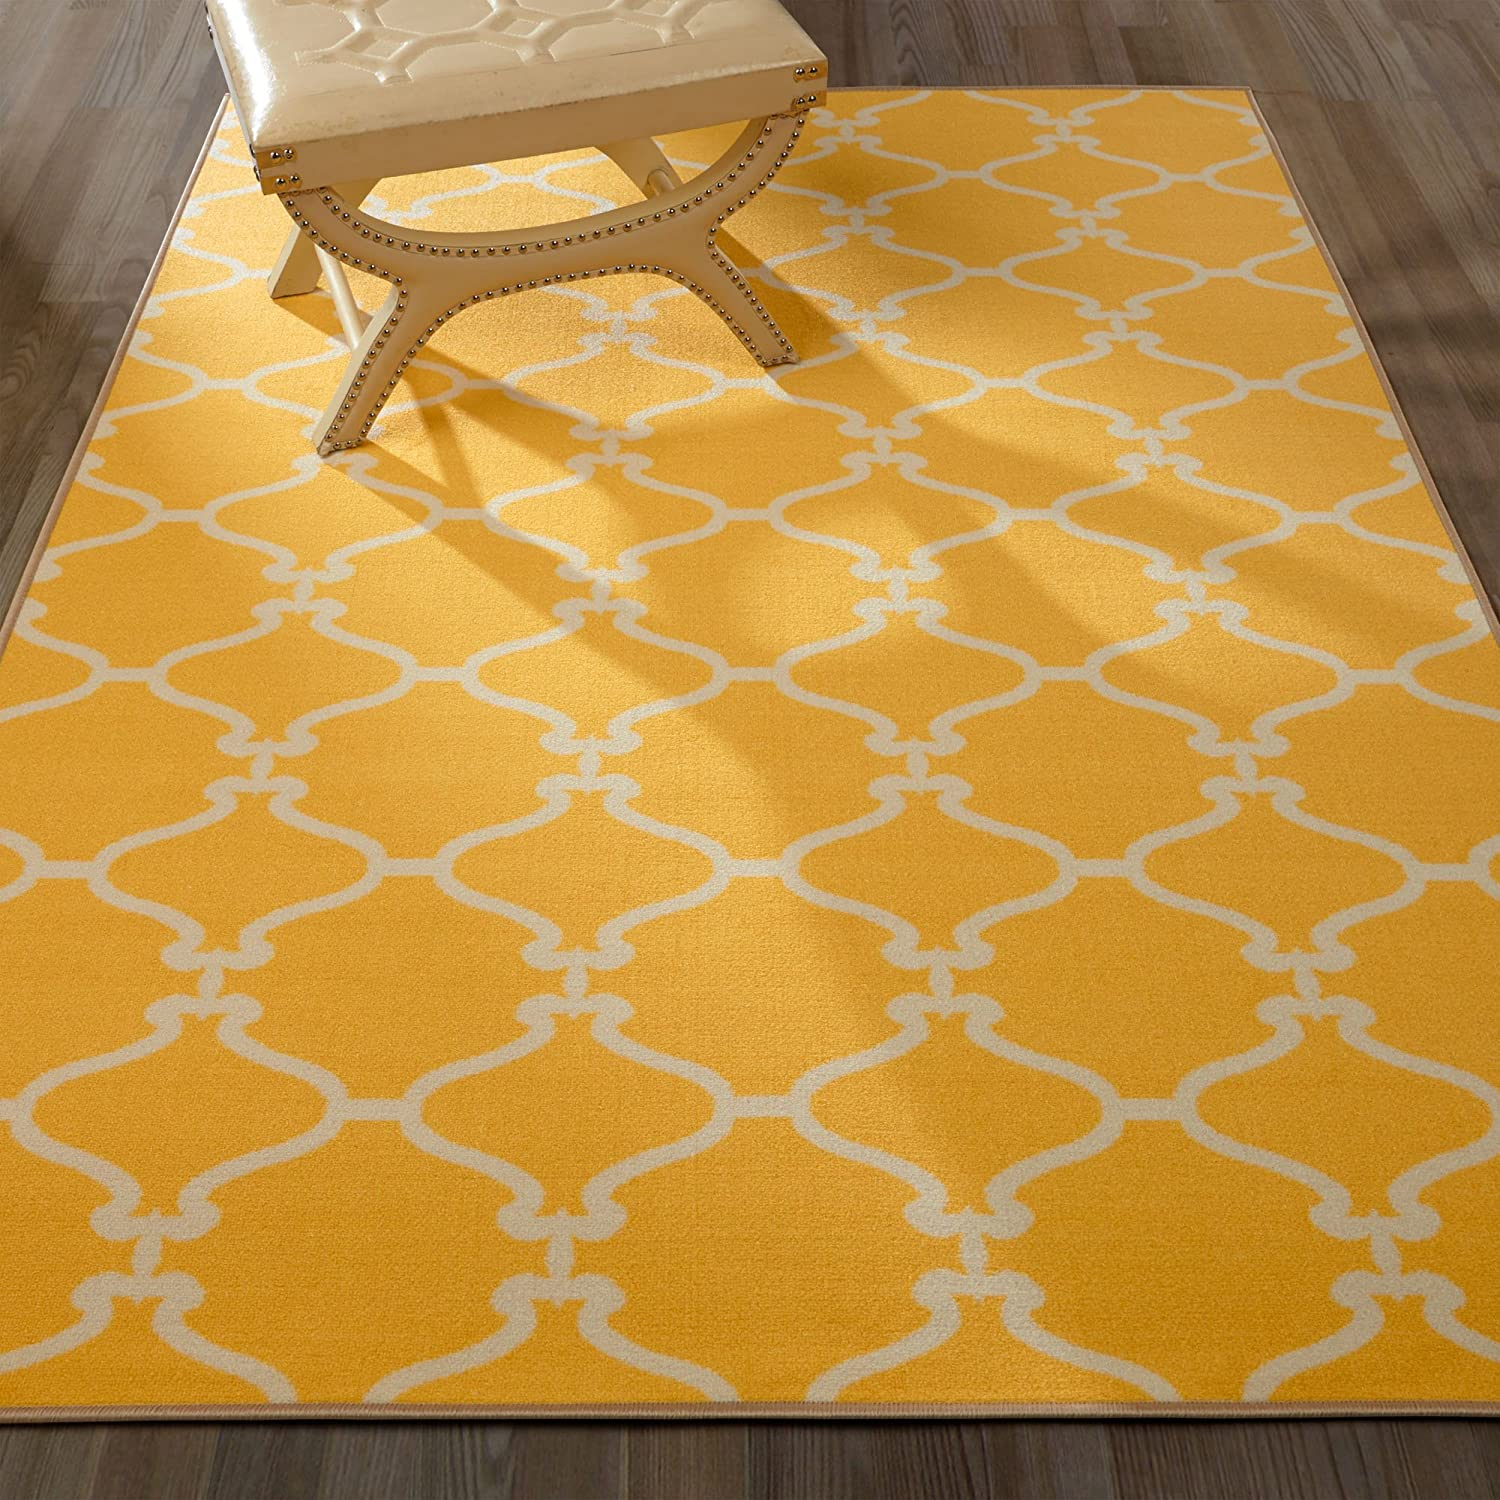 Trellis Area Rug Yellow Ivory 5x7 Lattice Carpet